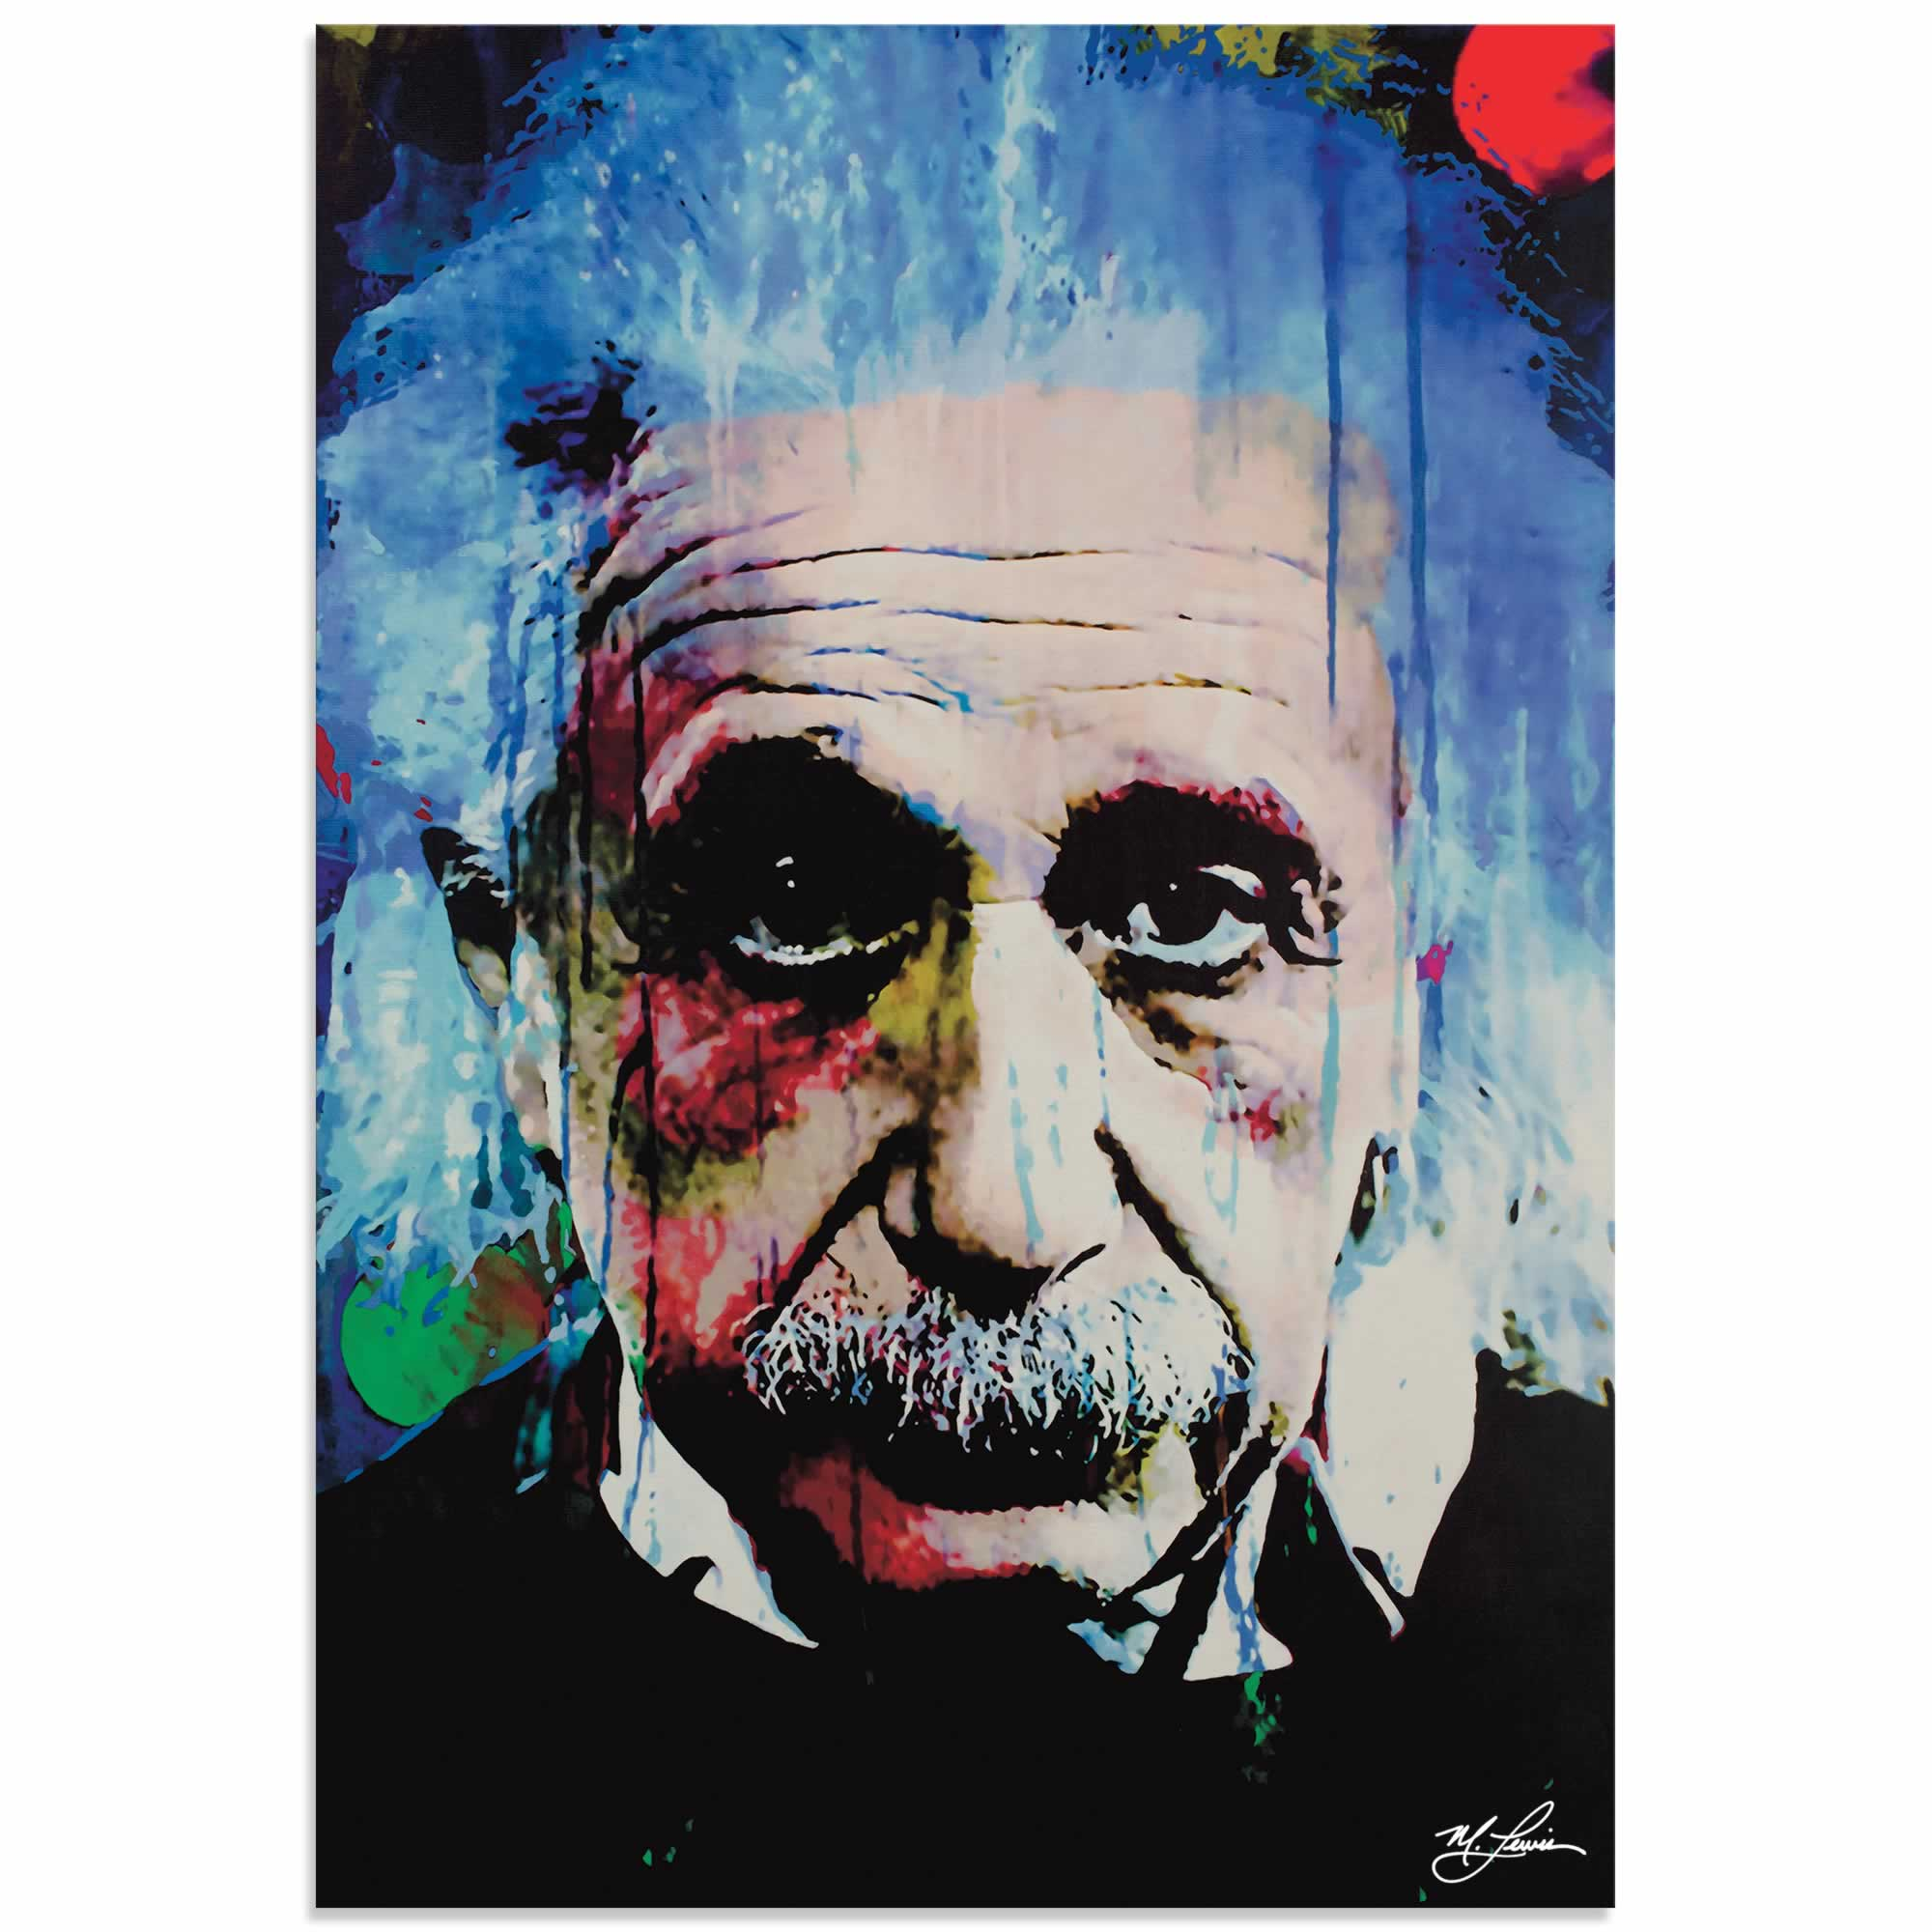 Albert Einstein Questioning Tomorrow | Pop Art Painting by Mark Lewis, Signed & Numbered Limited Edition